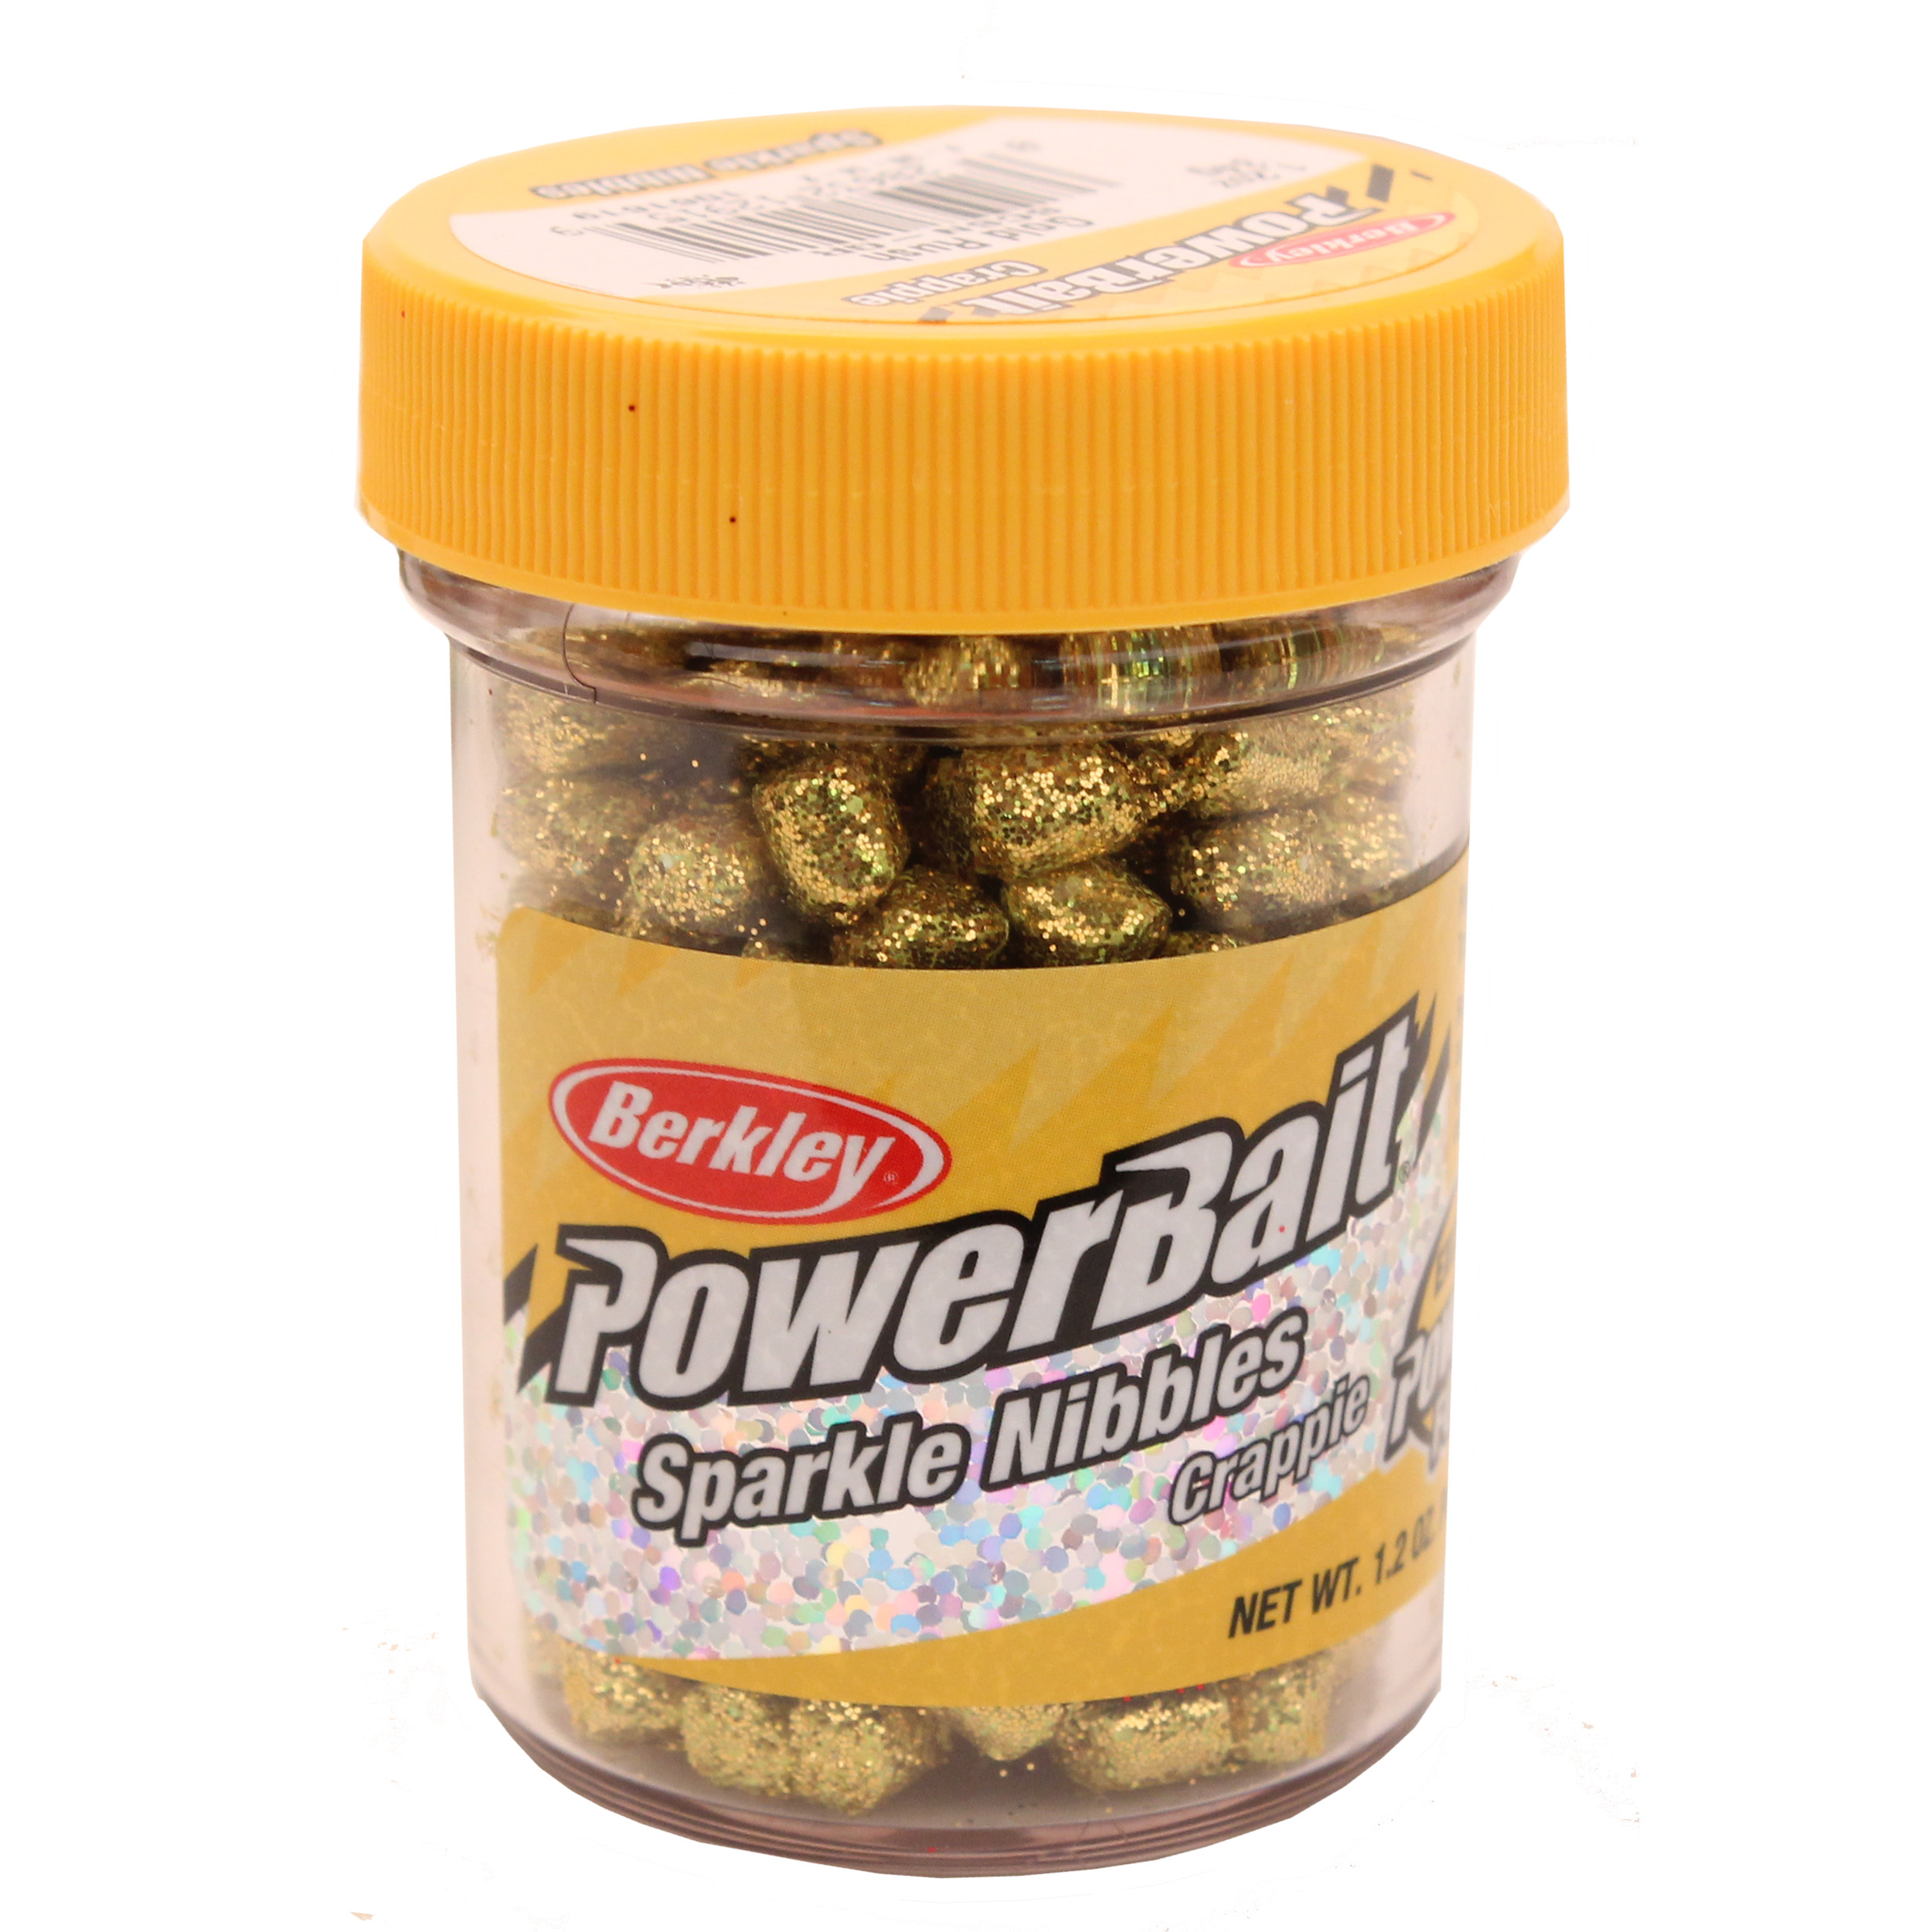 Berkley PowerBait Sparkle Crappie Nibbles Fishing Dough